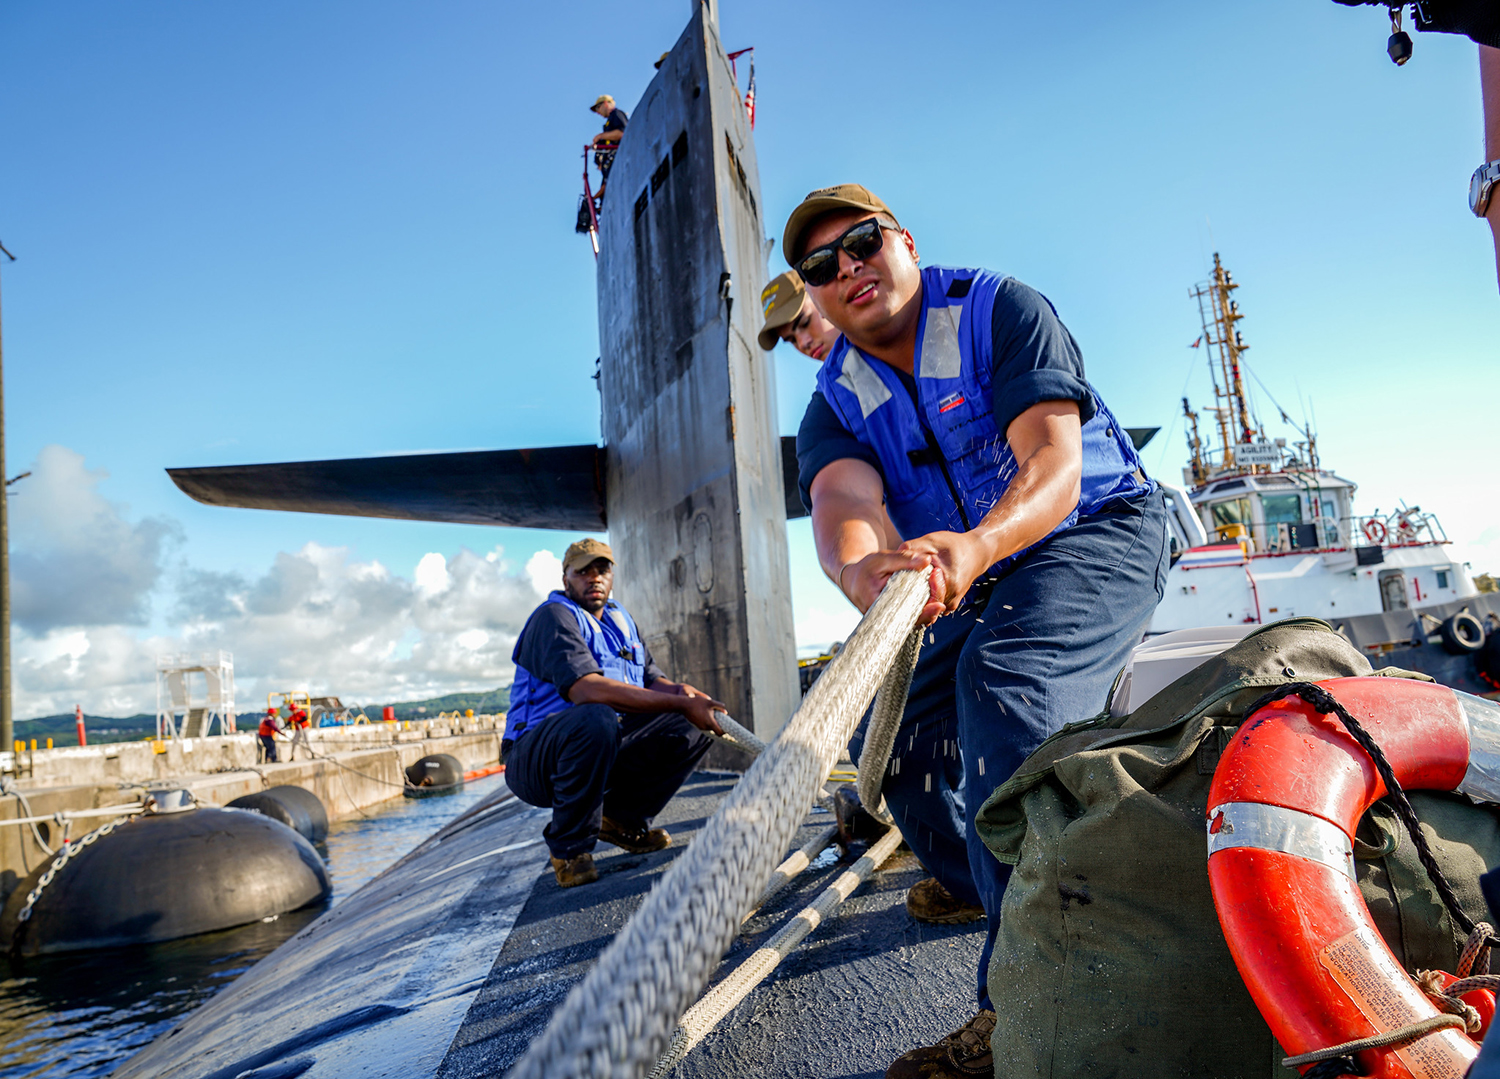 Sailors assigned to the Los Angeles-class fast attack submarine USS Oklahoma City (SSN 723) handle line Sept. 24, 2019, as the boat moors pierside at Apra Harbor, Guam, following a family day cruise. (Mass Communication Specialist 2nd Class Kelsey J. Hockenberger/Navy)